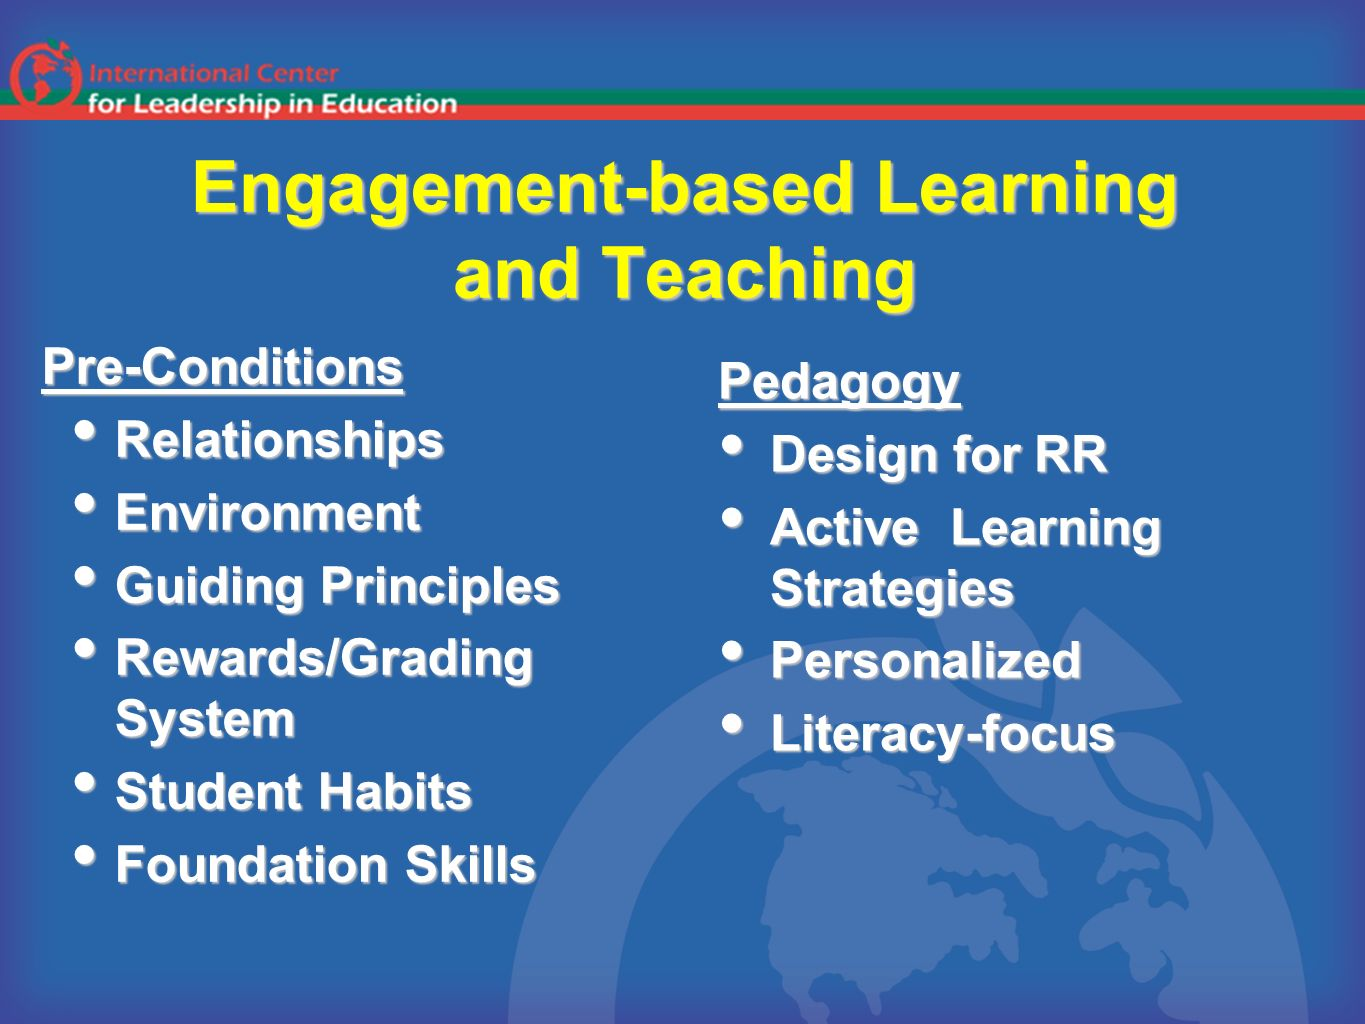 Engagement-based Learning and Teaching